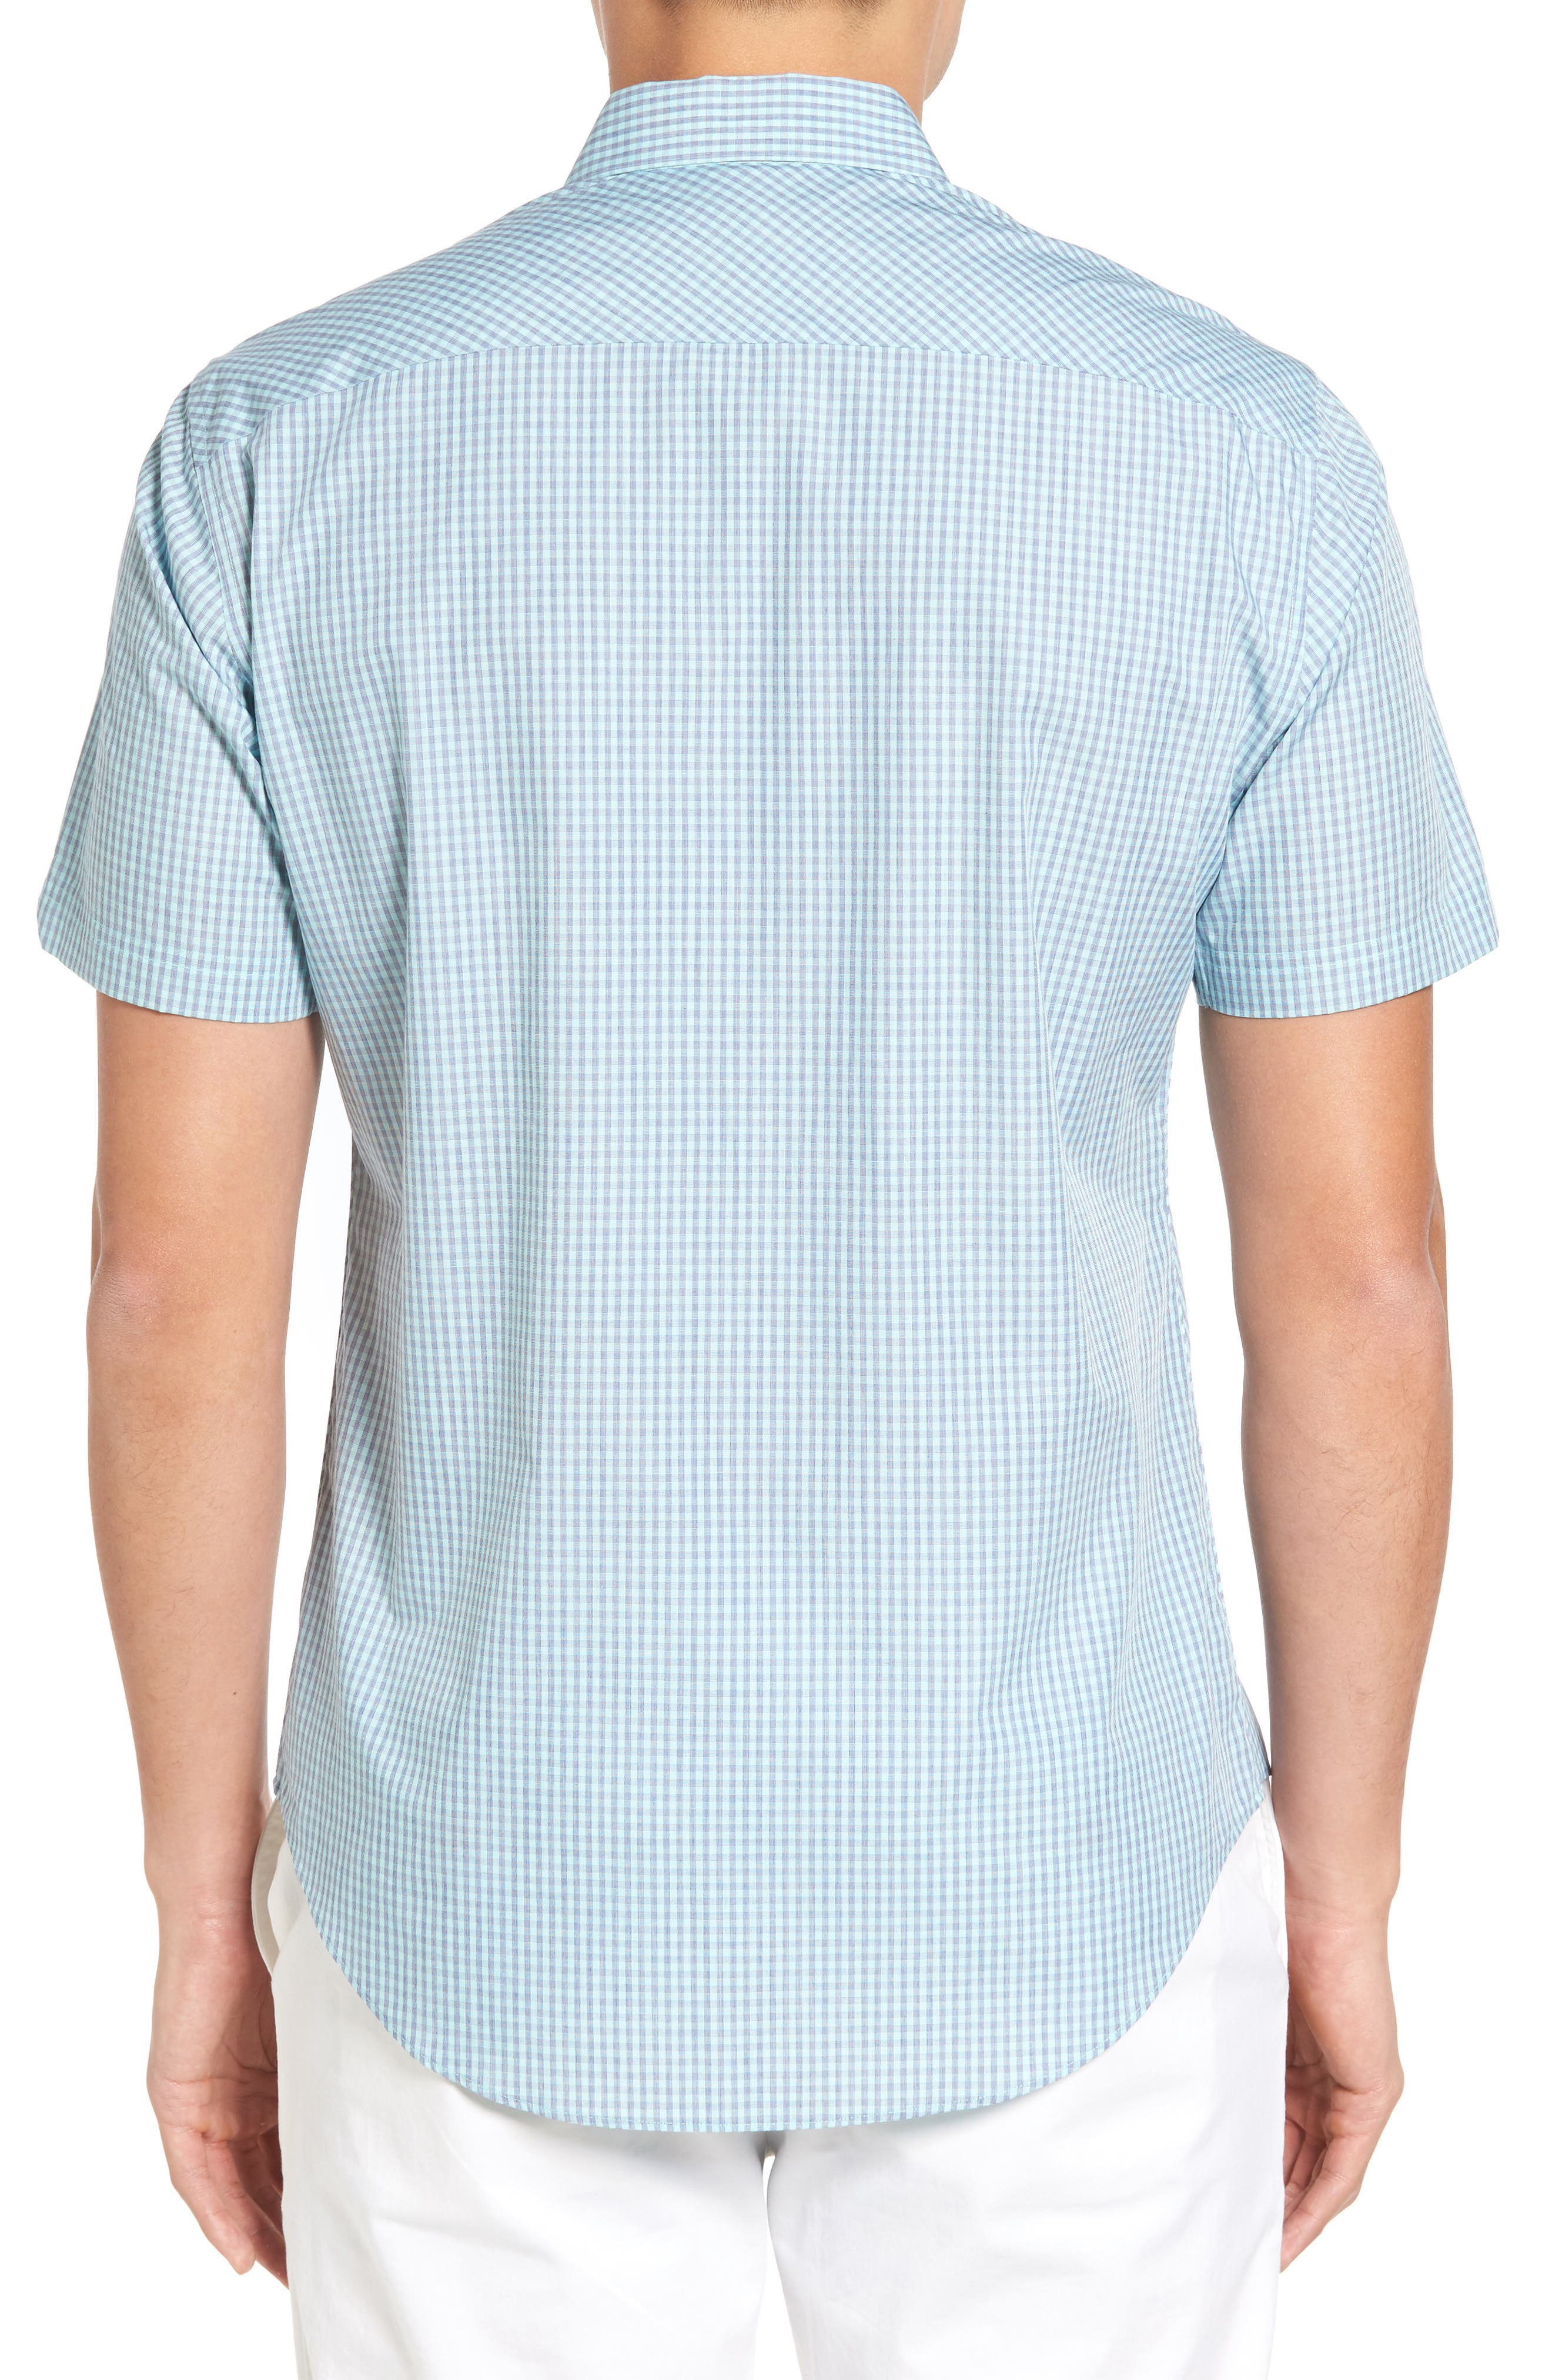 Rappaport Sport Shirt,                             Alternate thumbnail 2, color,                             332